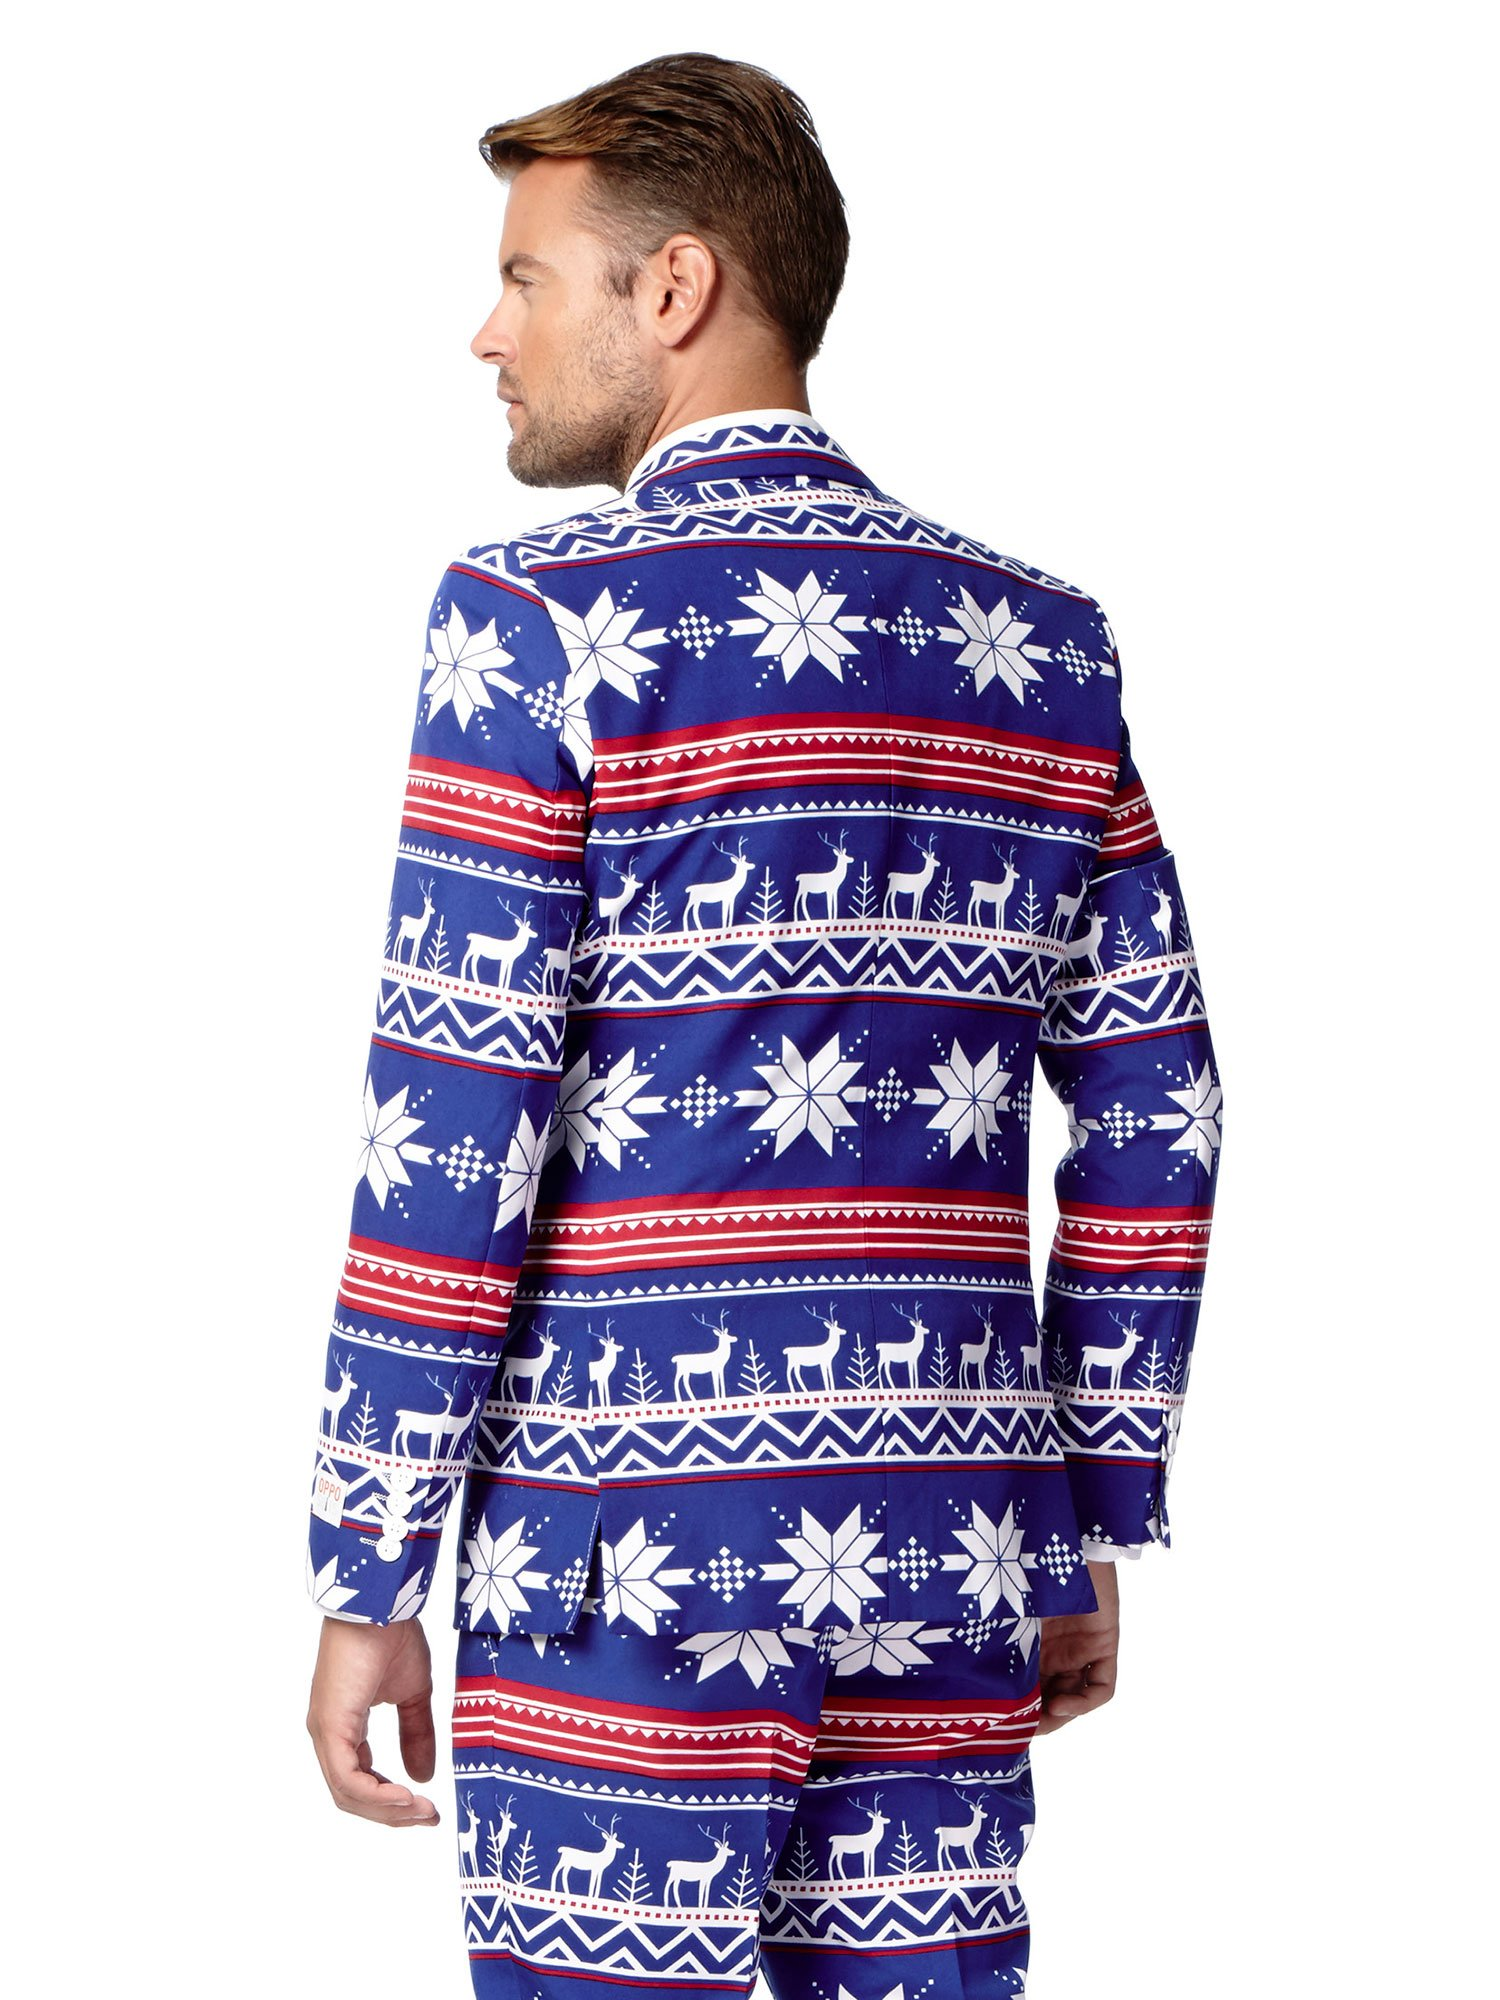 6ce9e8c32d4e11 OppoSuits Christmas Suits for Men in Different Prints – Ugly Xmas ...